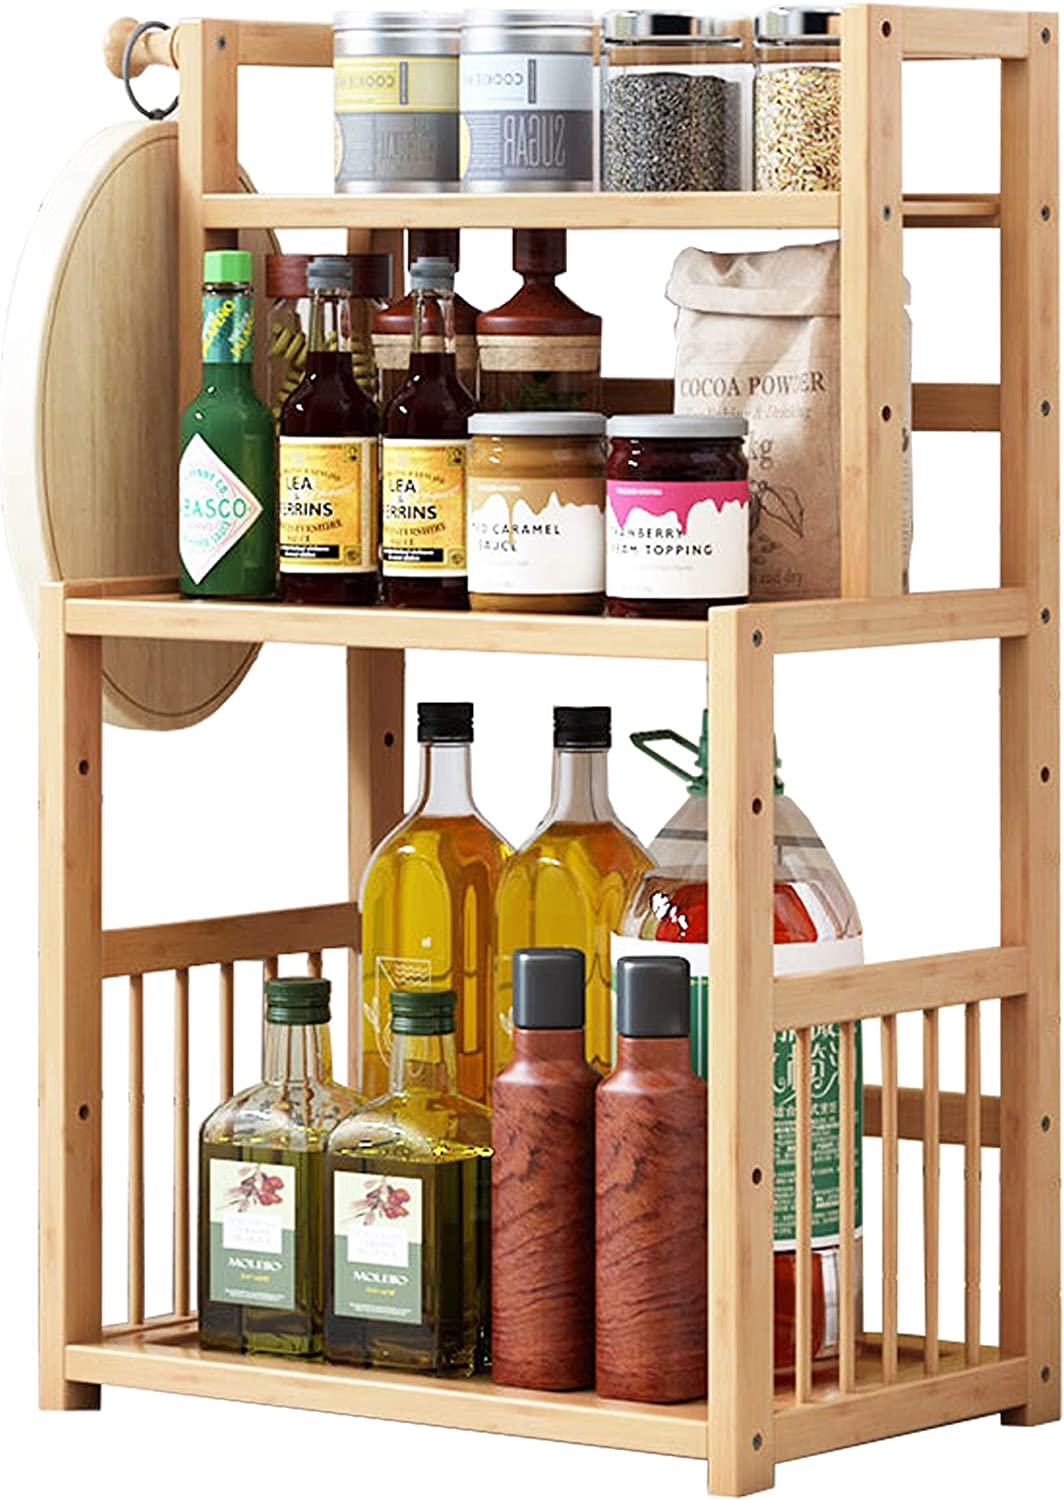 BuSinMuGe Super special price 3 tier Spice Rack Storage Max 80% OFF Shelves - Bamboo Kitchen Cou